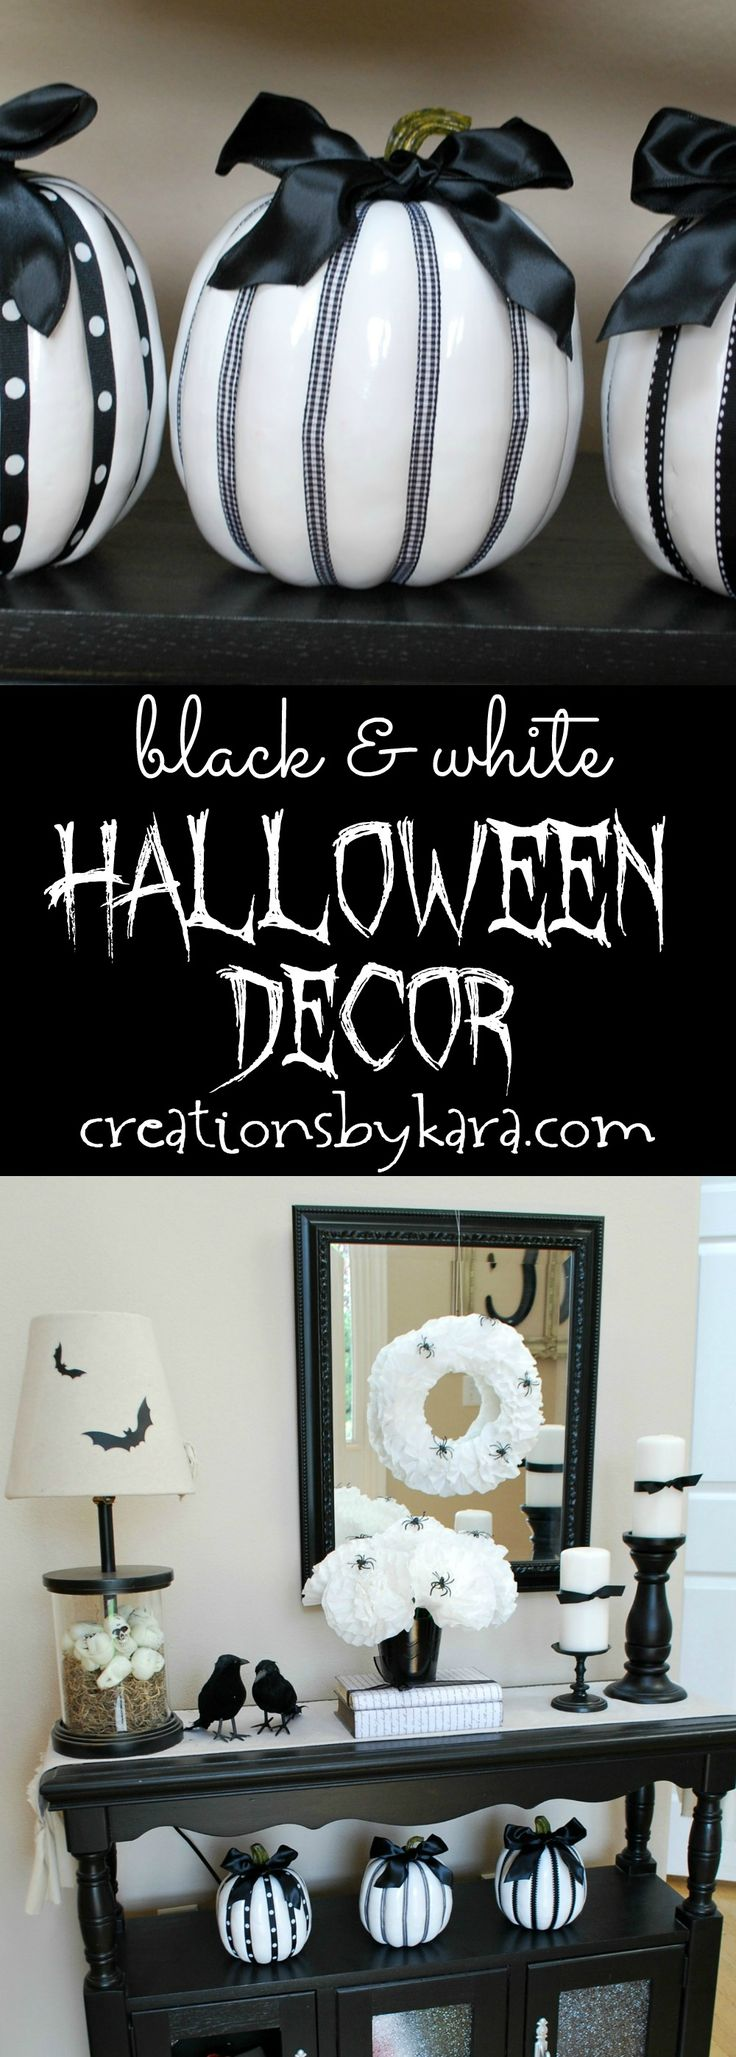 Black and White Halloween Decor Ideas - Halloween is the perfect holiday for decorating with black and white!